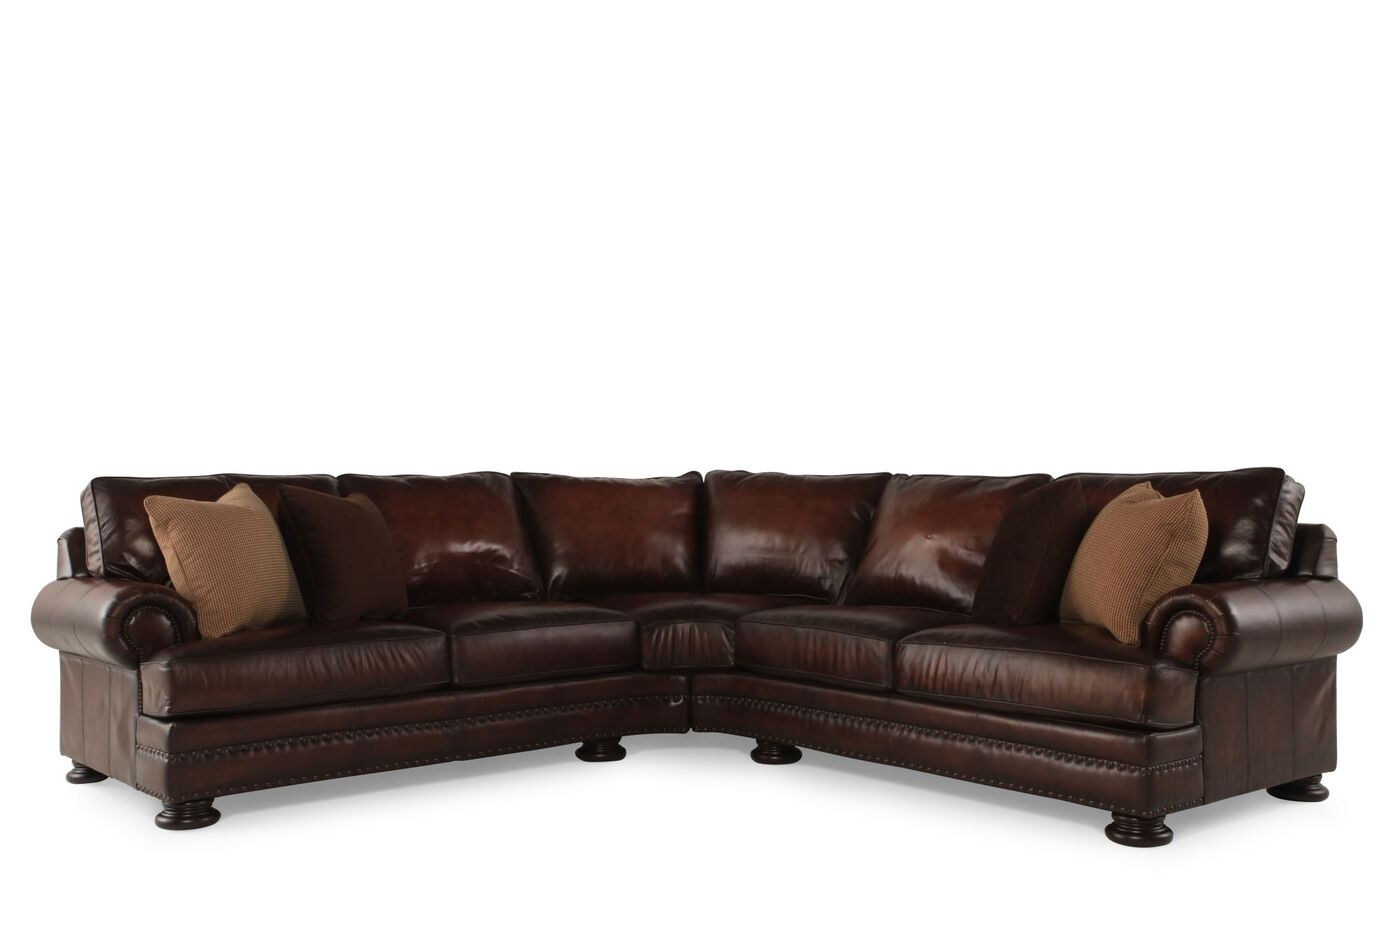 Bernhardt foster leather sectional mathis brothers furniture for Sectional furniture